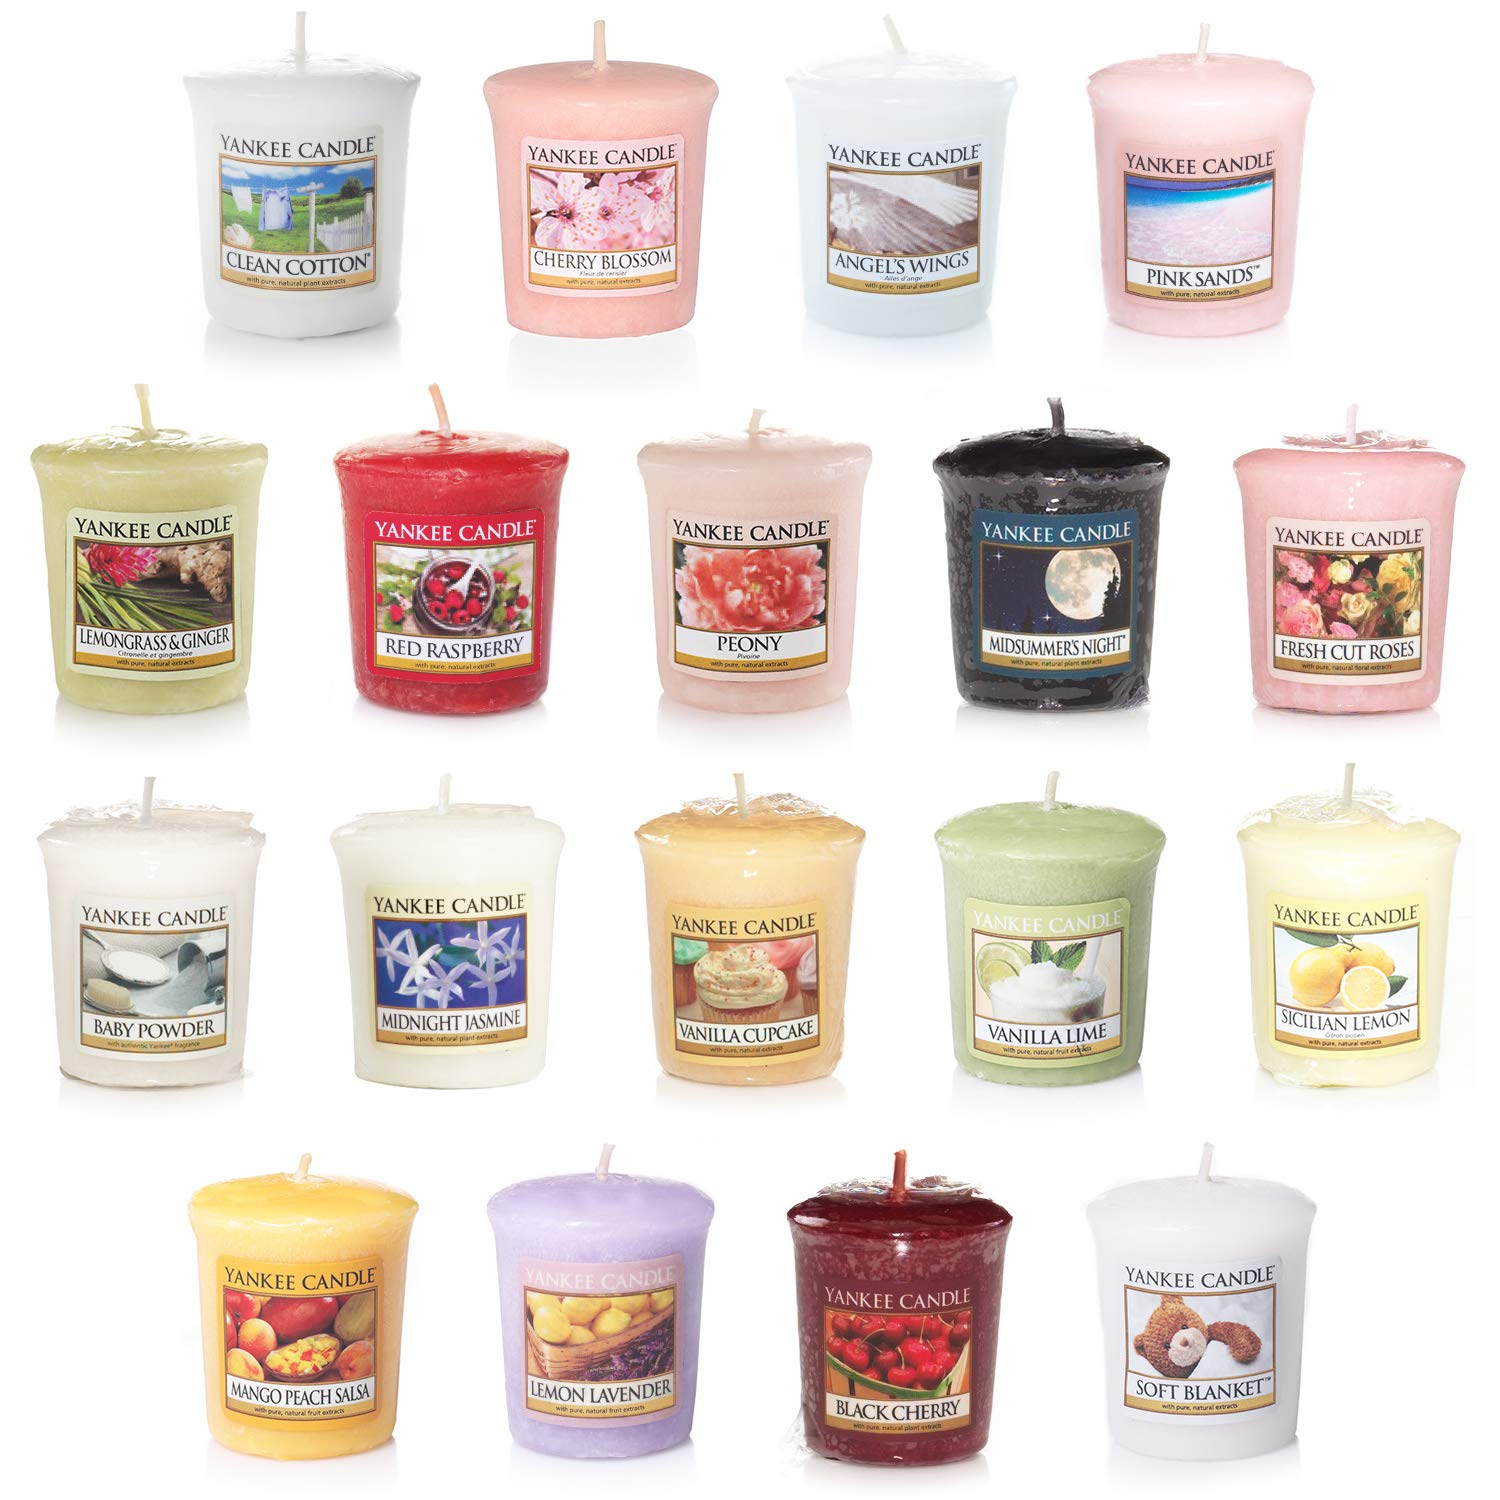 Yankee Candle Value Bundle with 18 Votive Scented Candles, Set of 18, Mixed Popular Fragrances